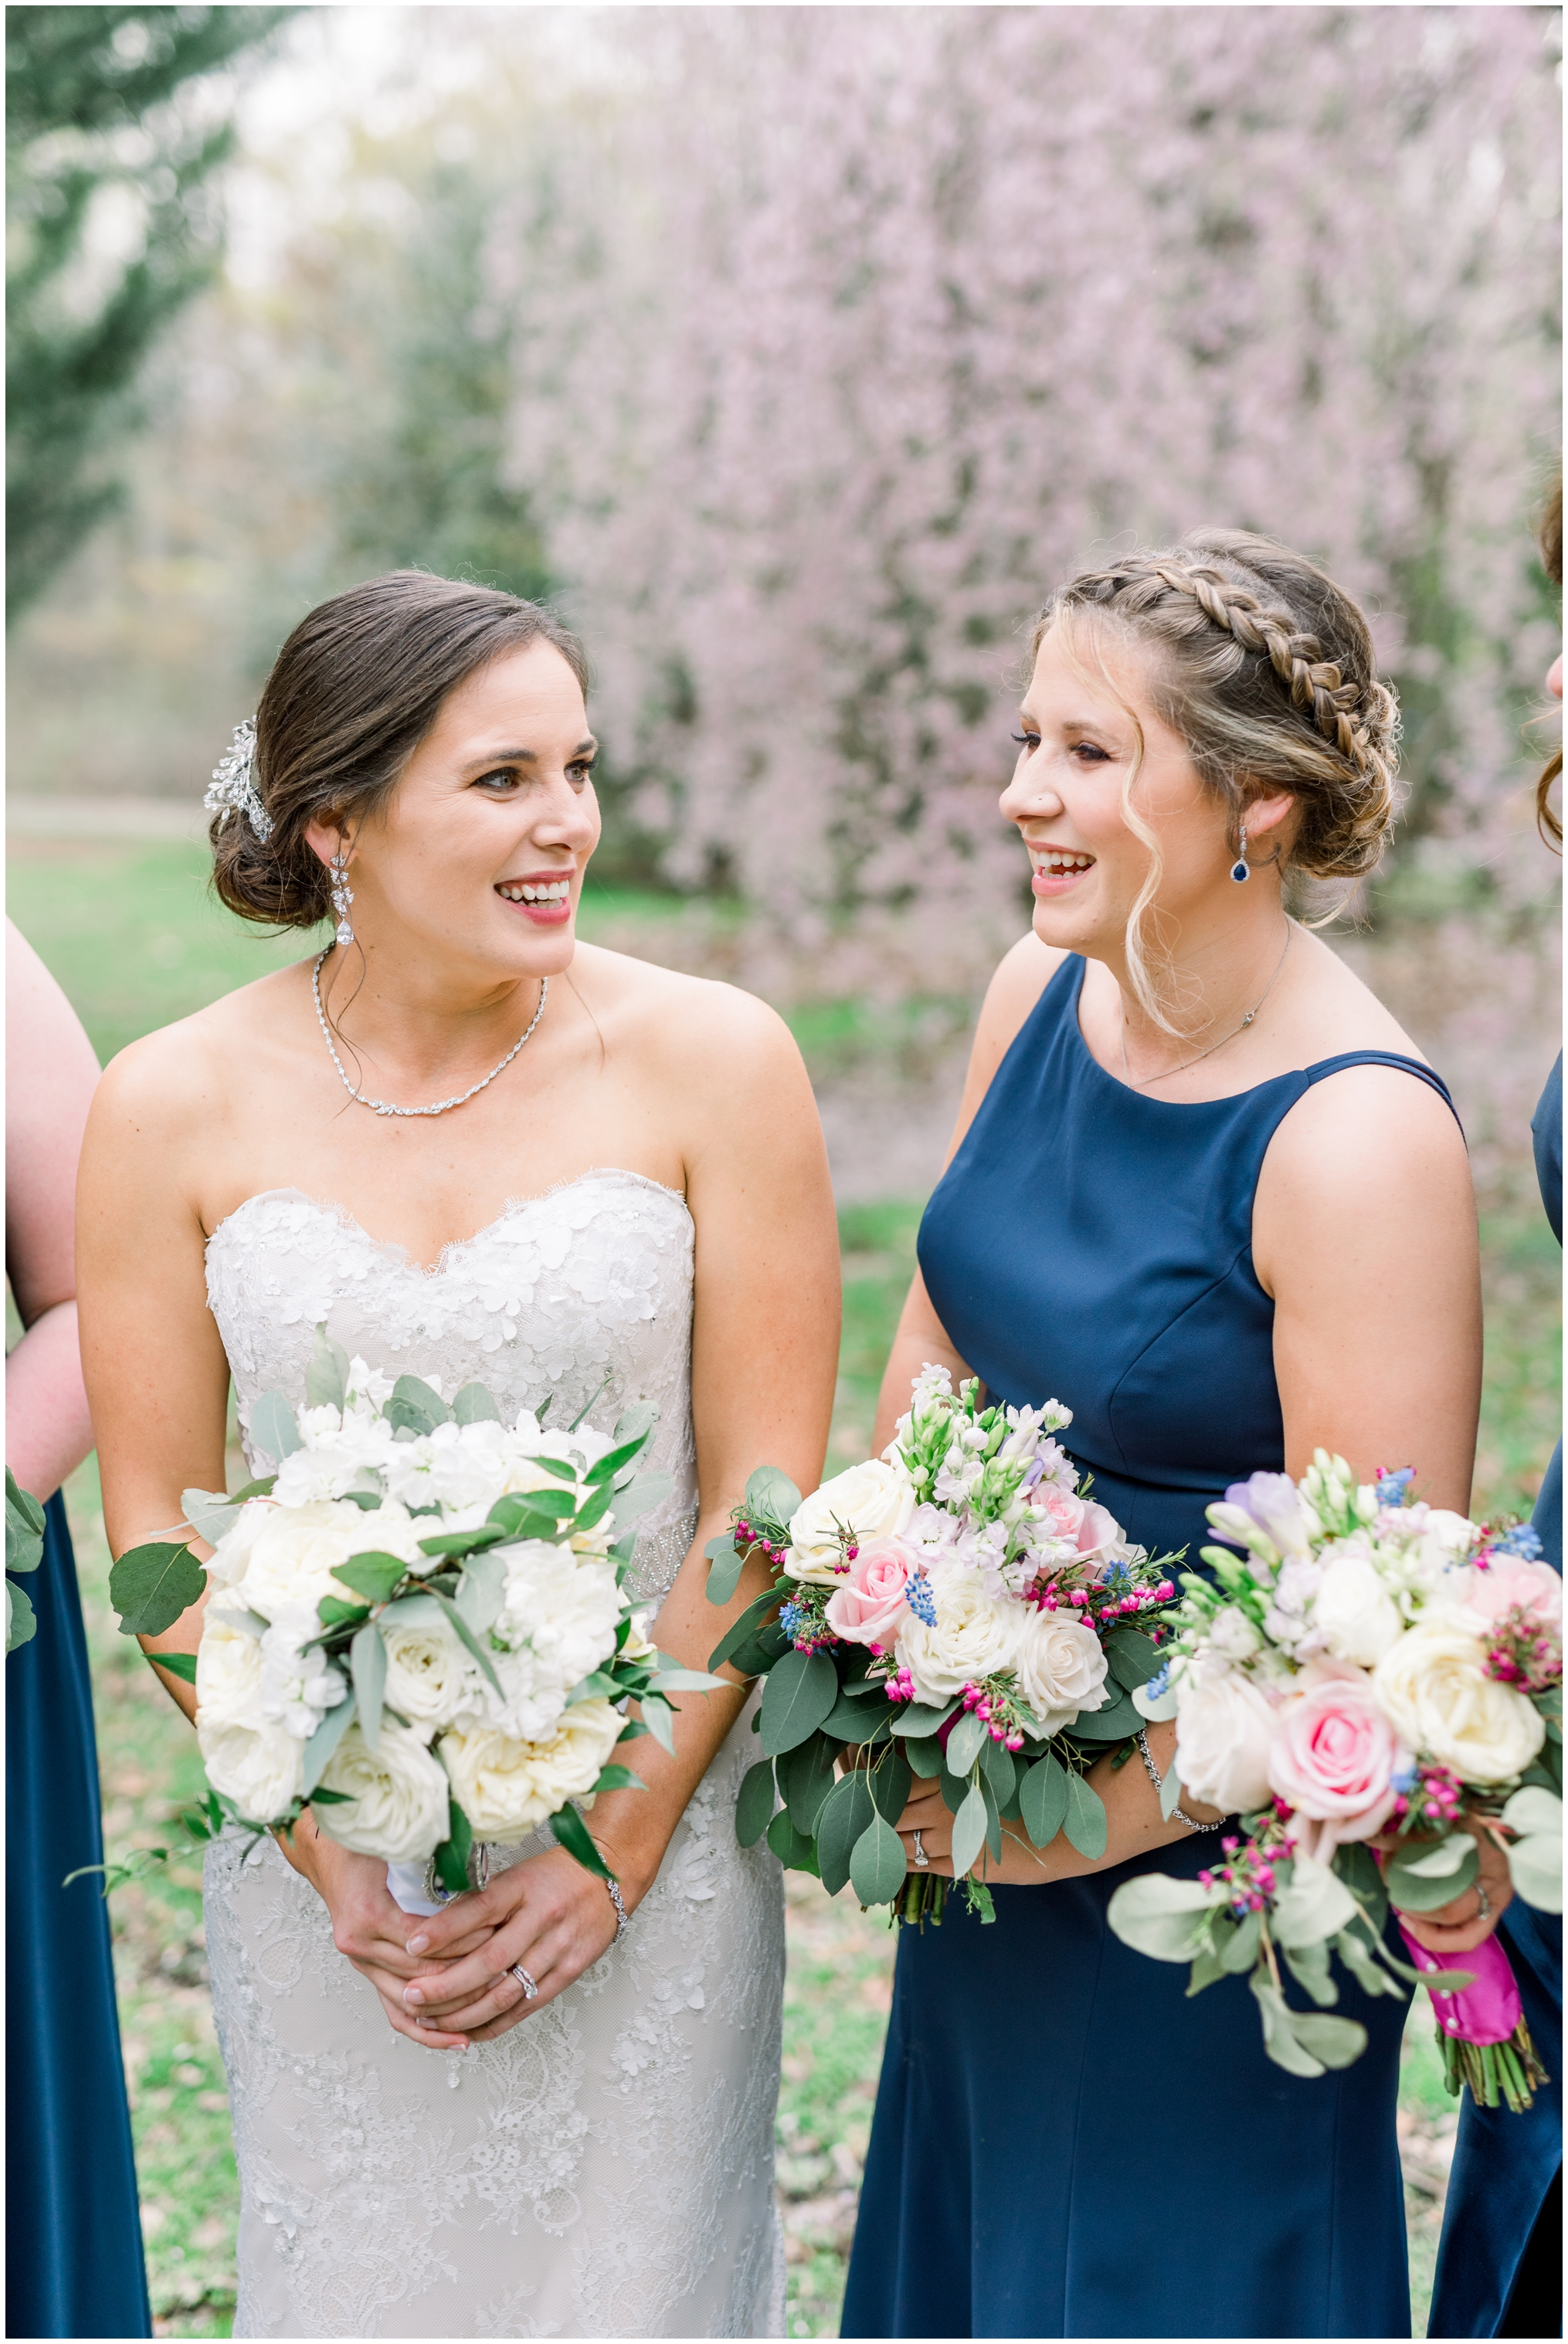 Krista Brackin Photography | April Wedding at The Carriage House at Rockwood Park_0063.jpg